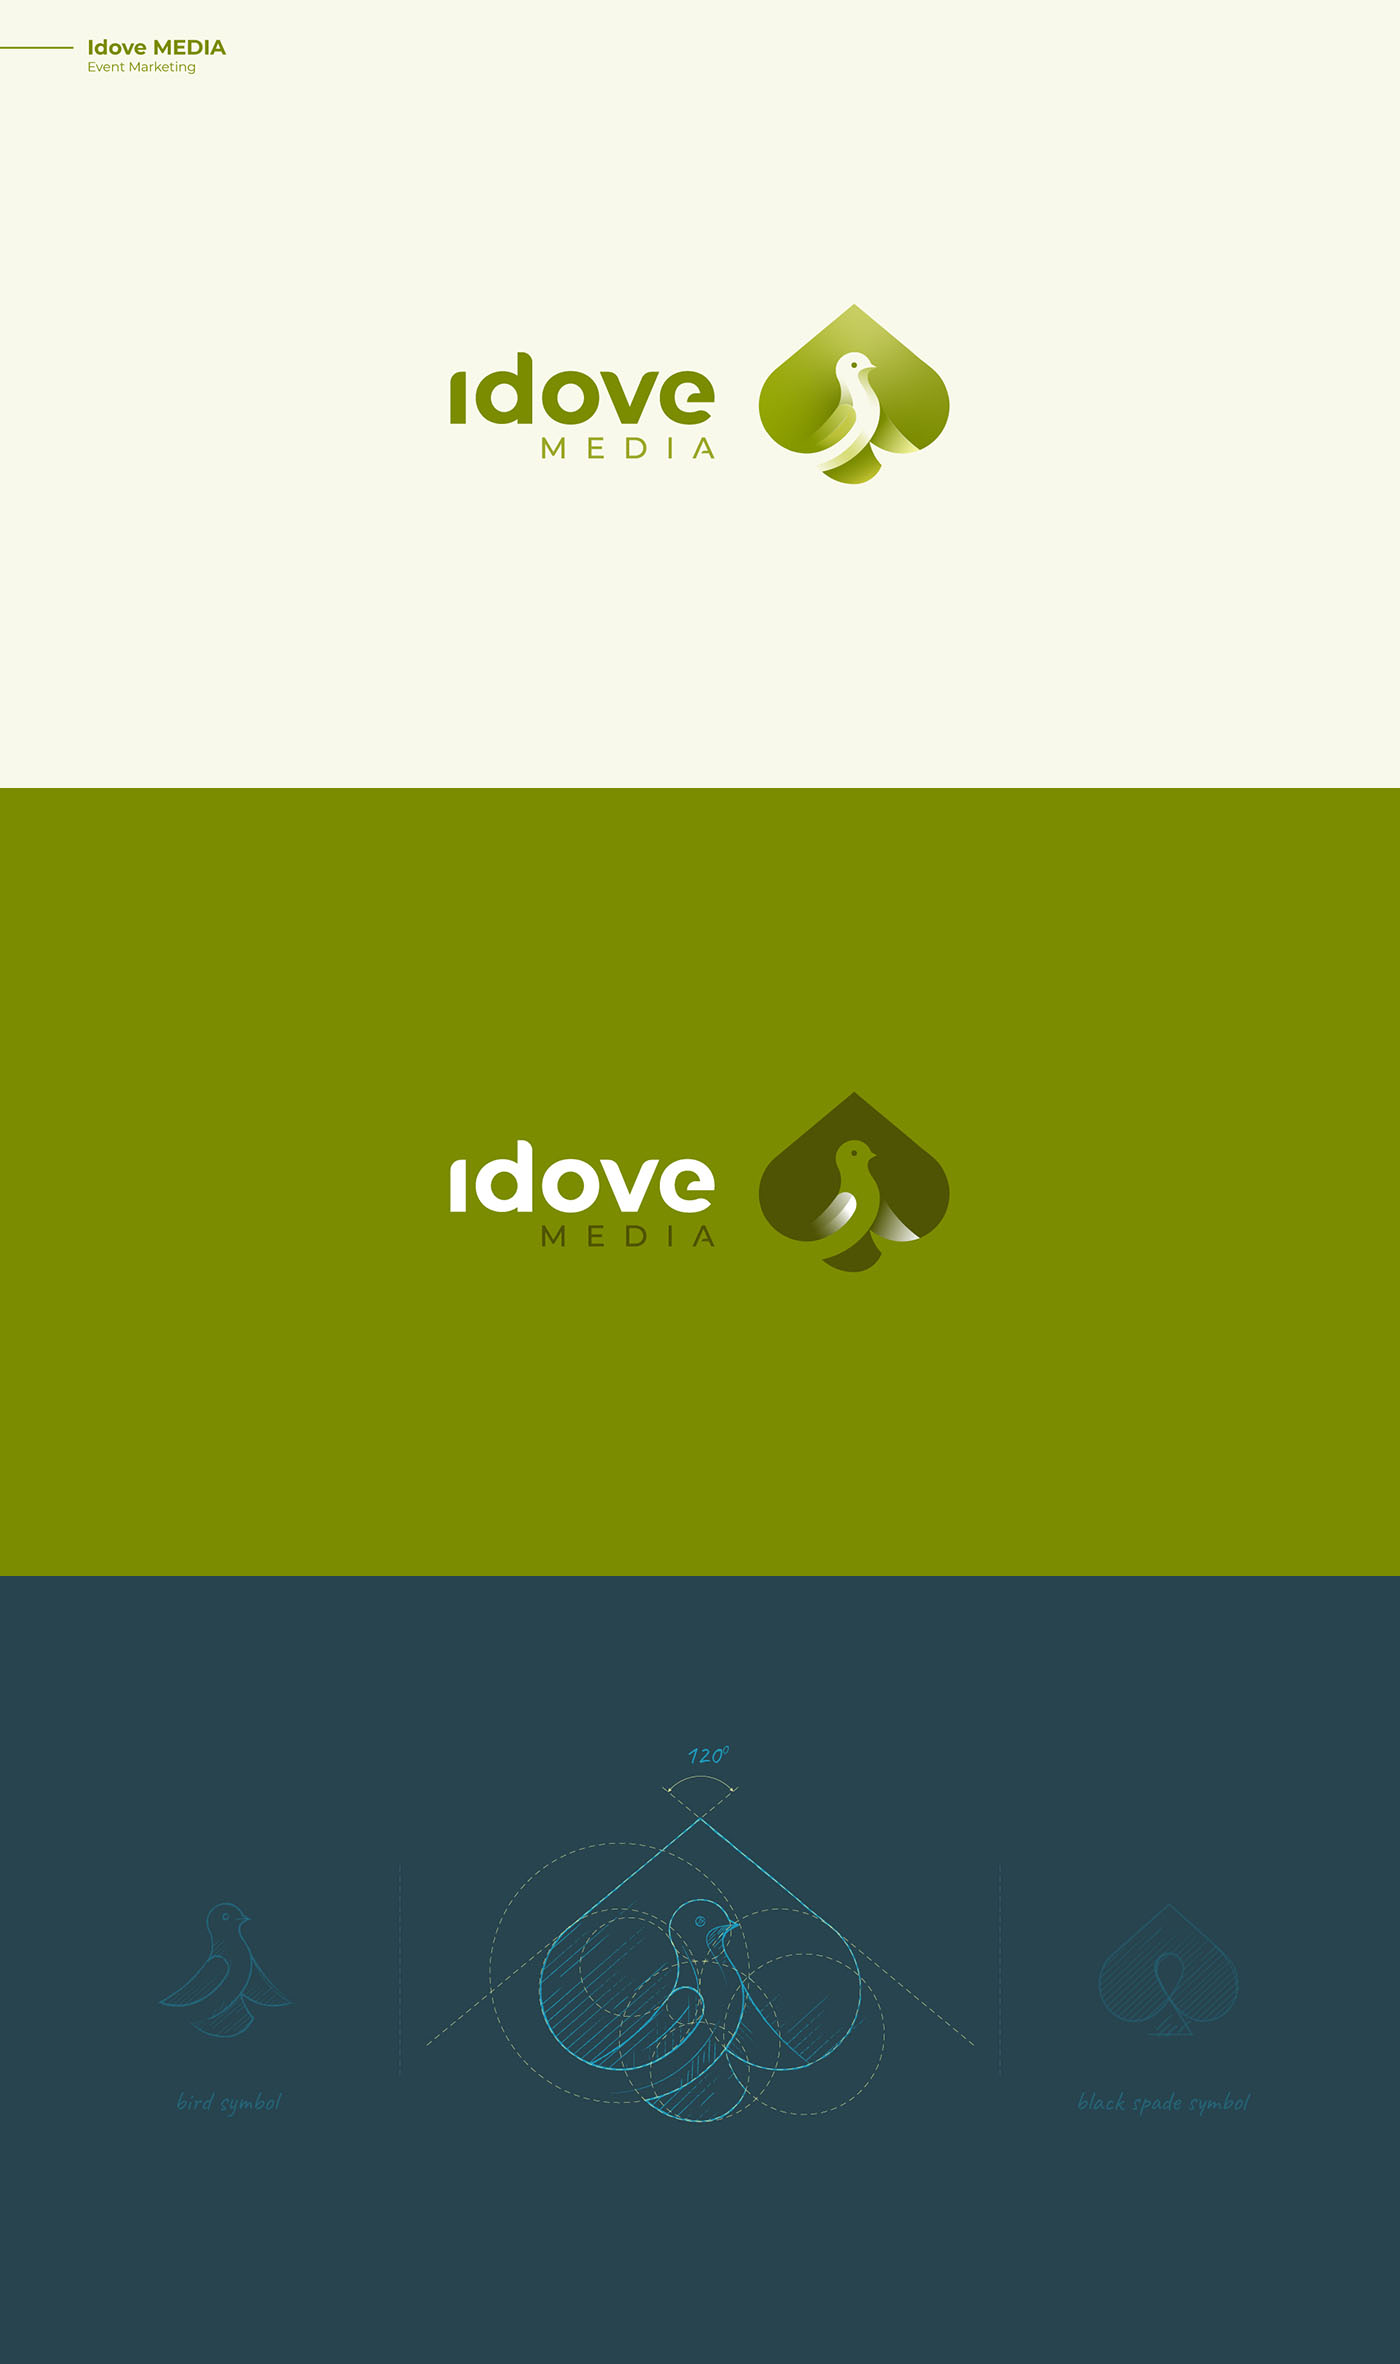 Idove Media - Bird logo design - animal logo